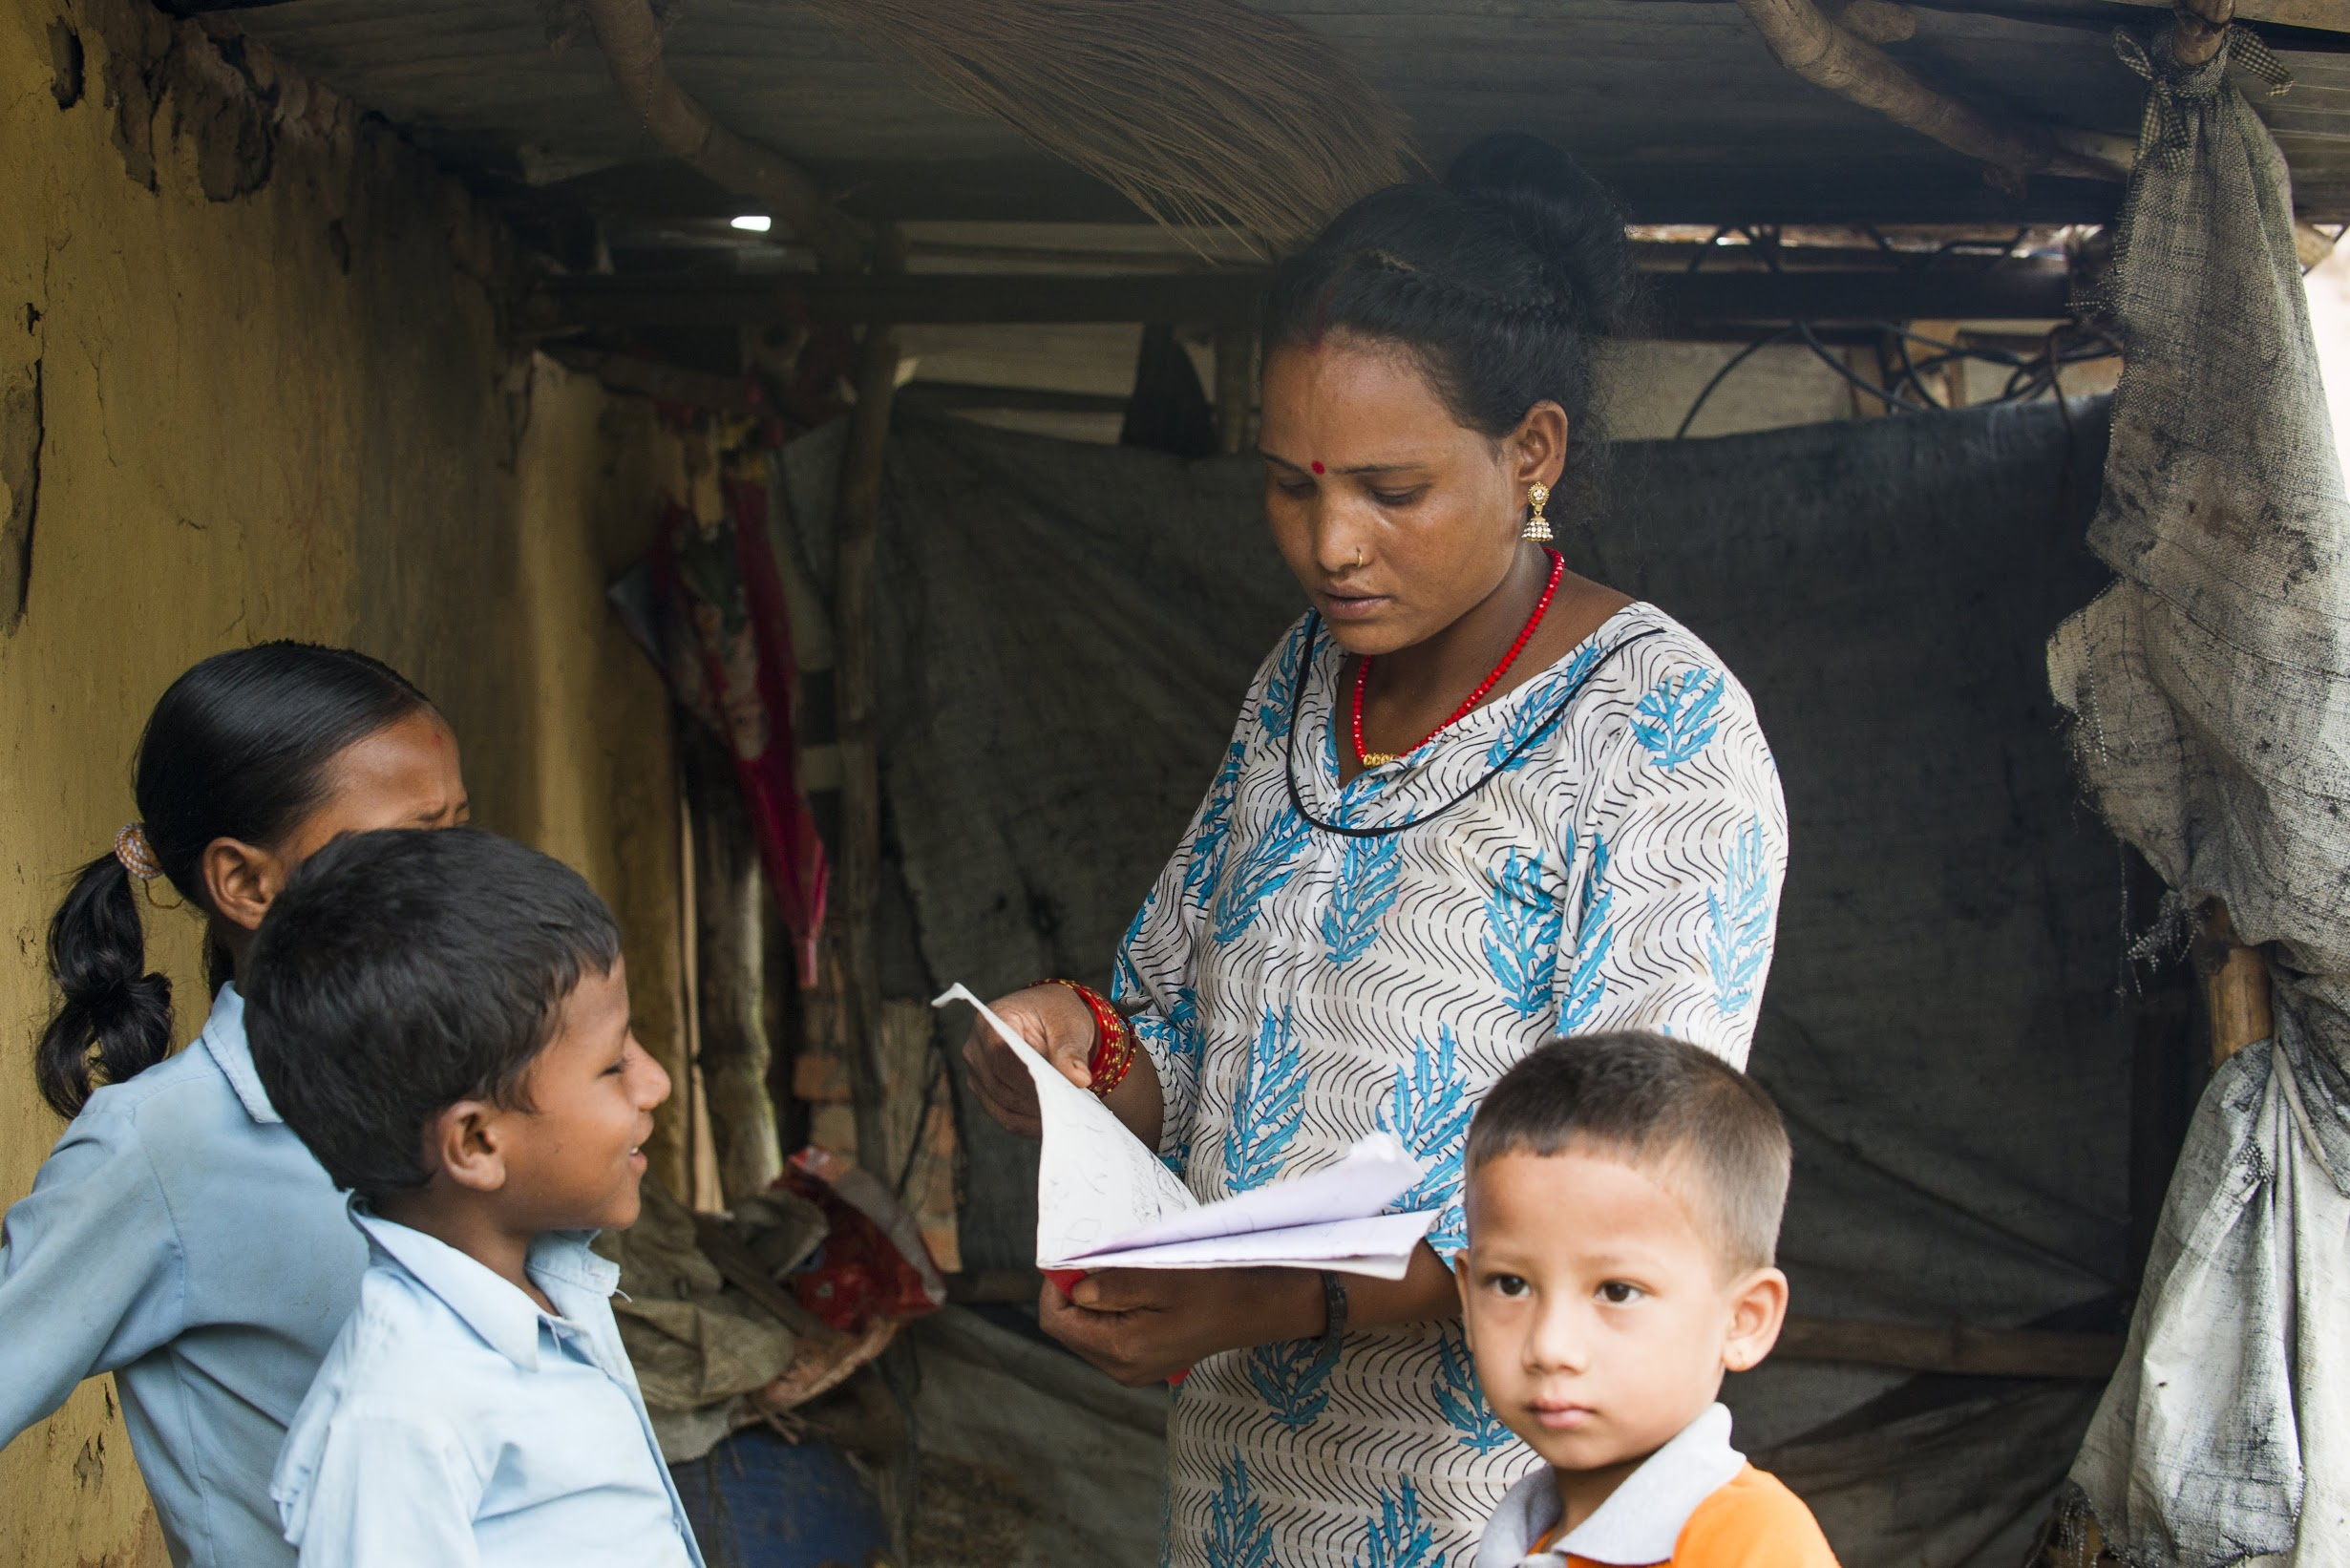 Dhana checks her children's homework before sending them off to school